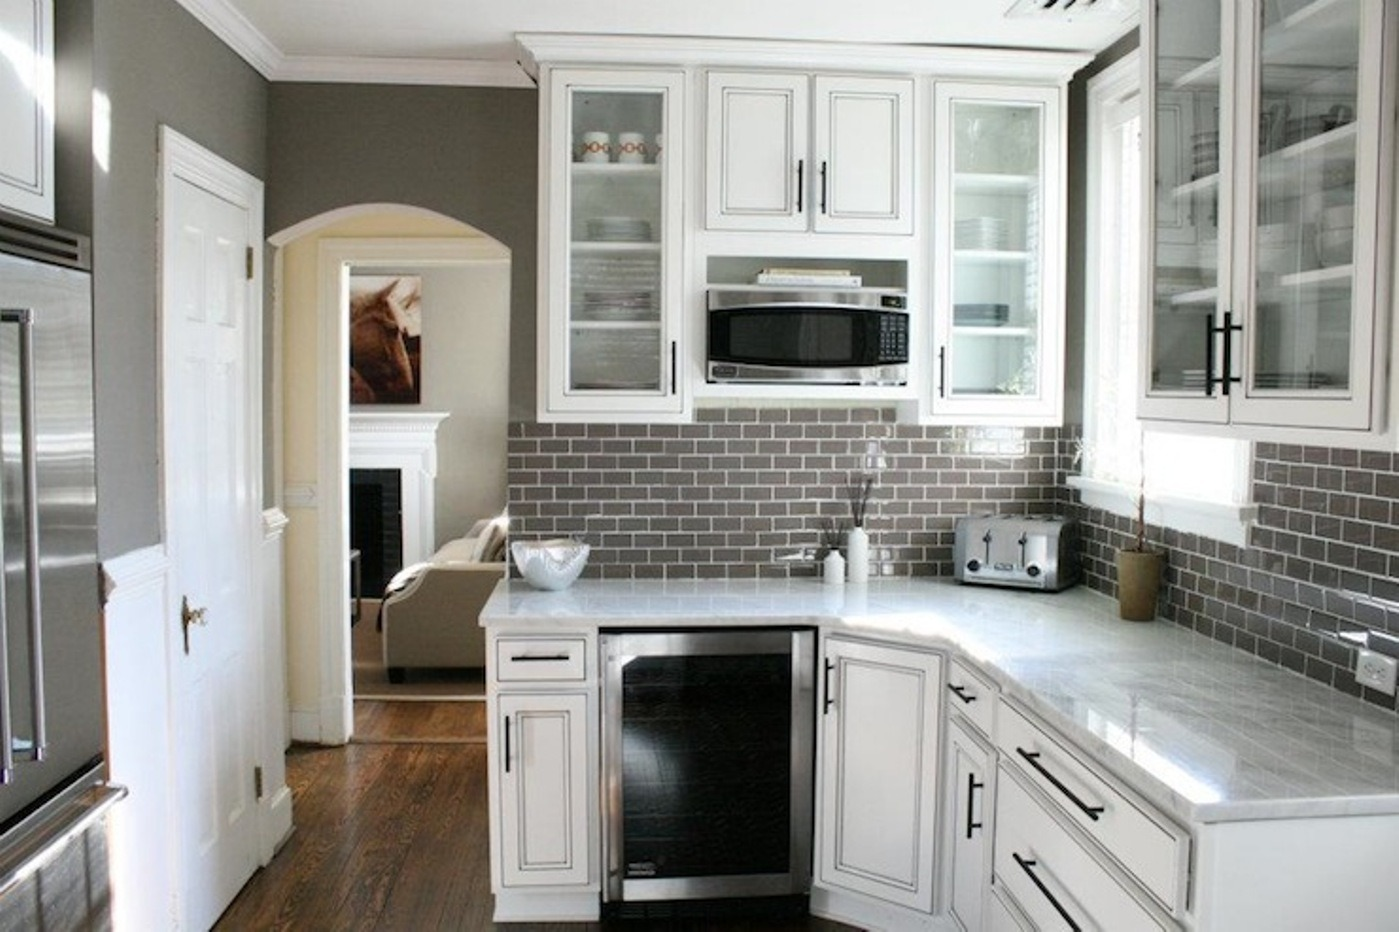 White Quartz Stone/Sparkle White Quartz Countertop